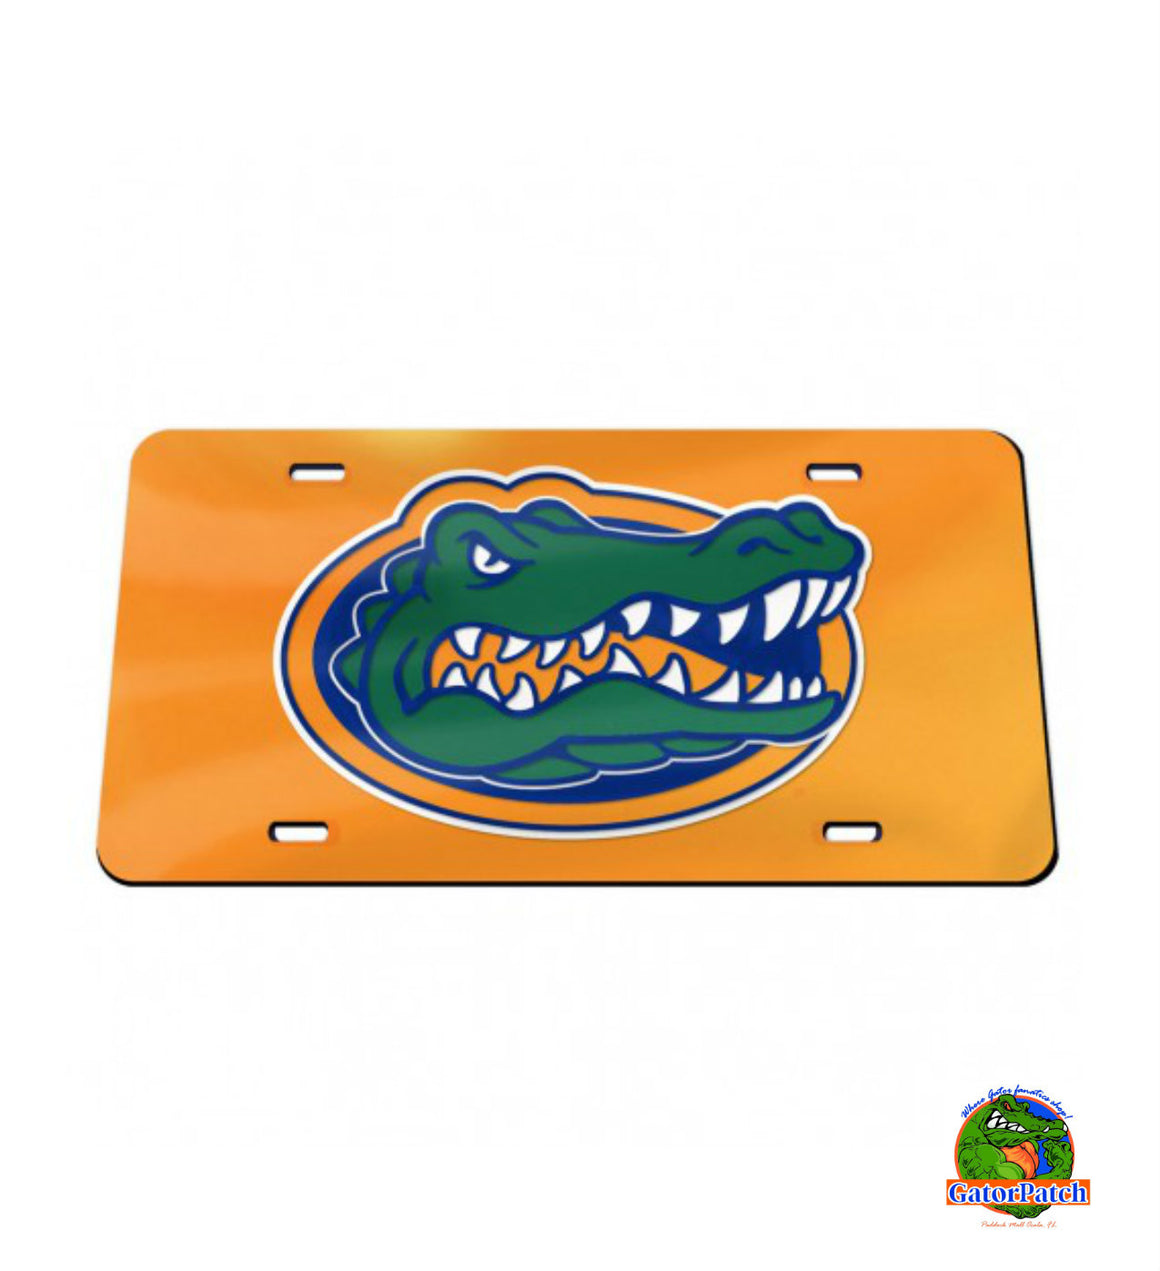 License Plate - Orange Background with Gator Logo